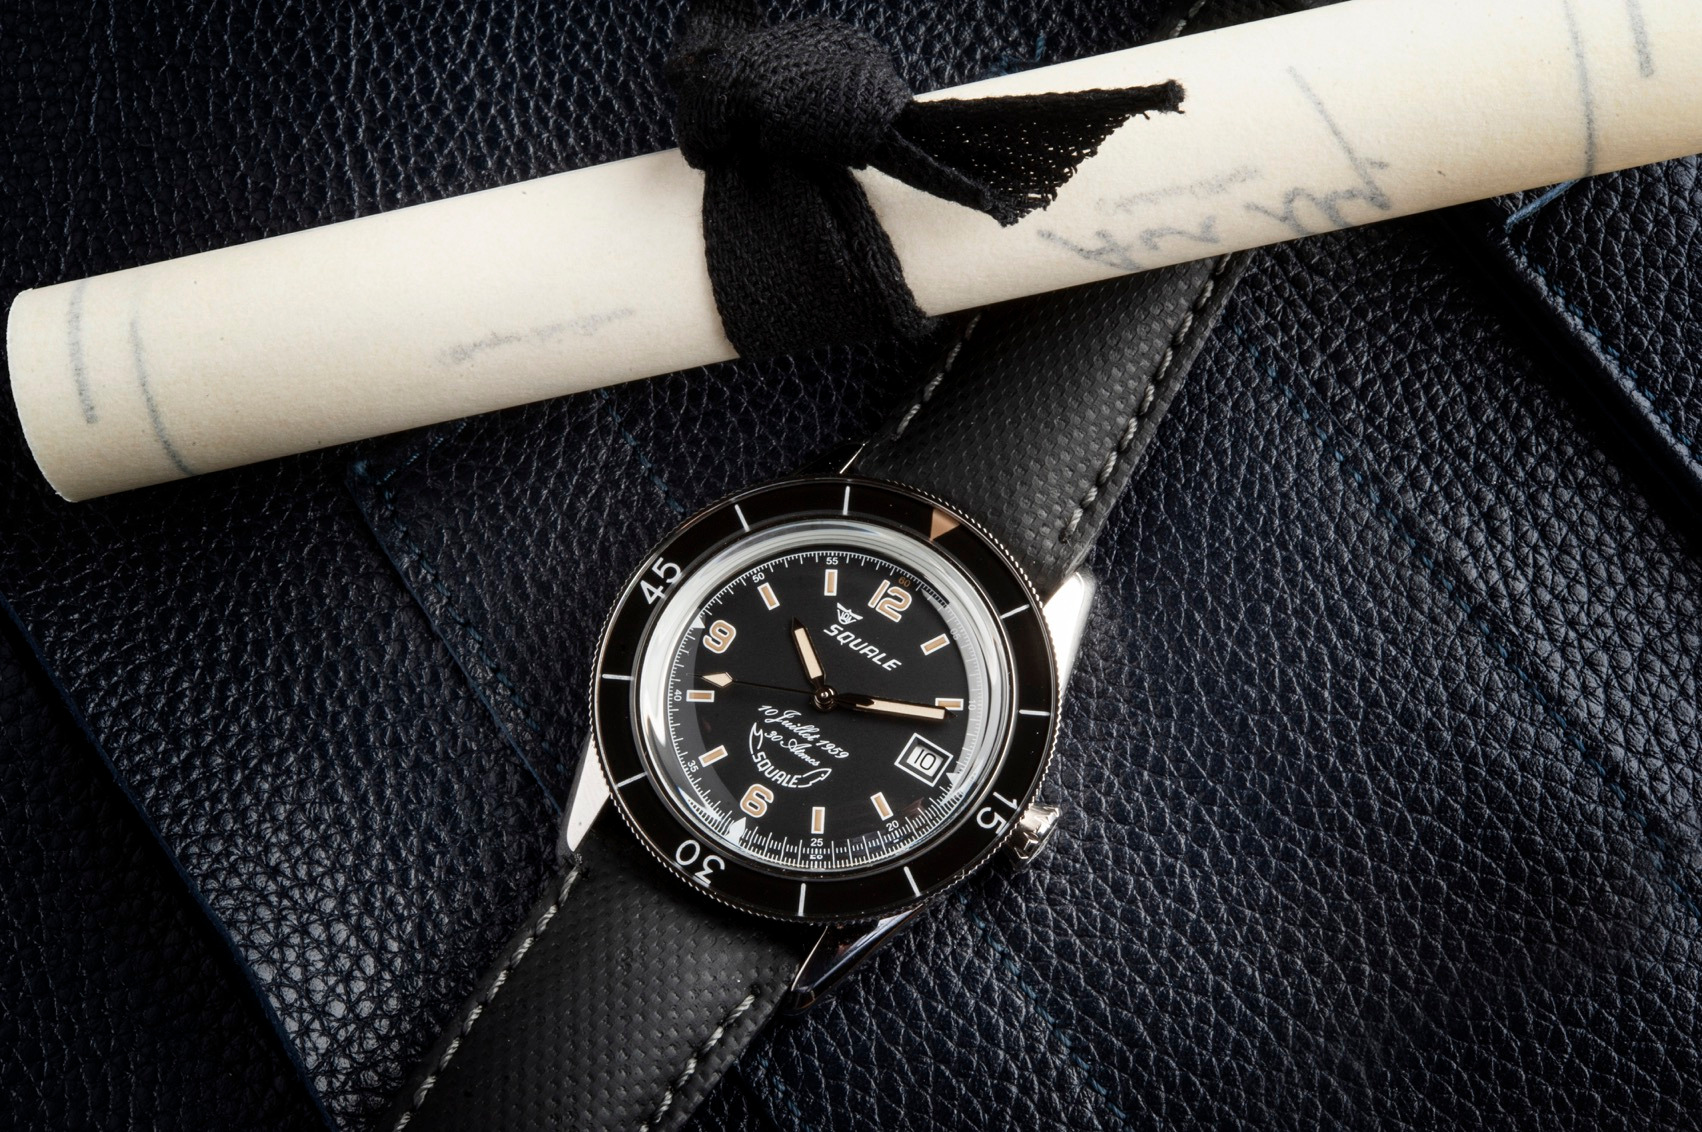 Squale 60 Year Limited Edition Dive Watch with Certificate